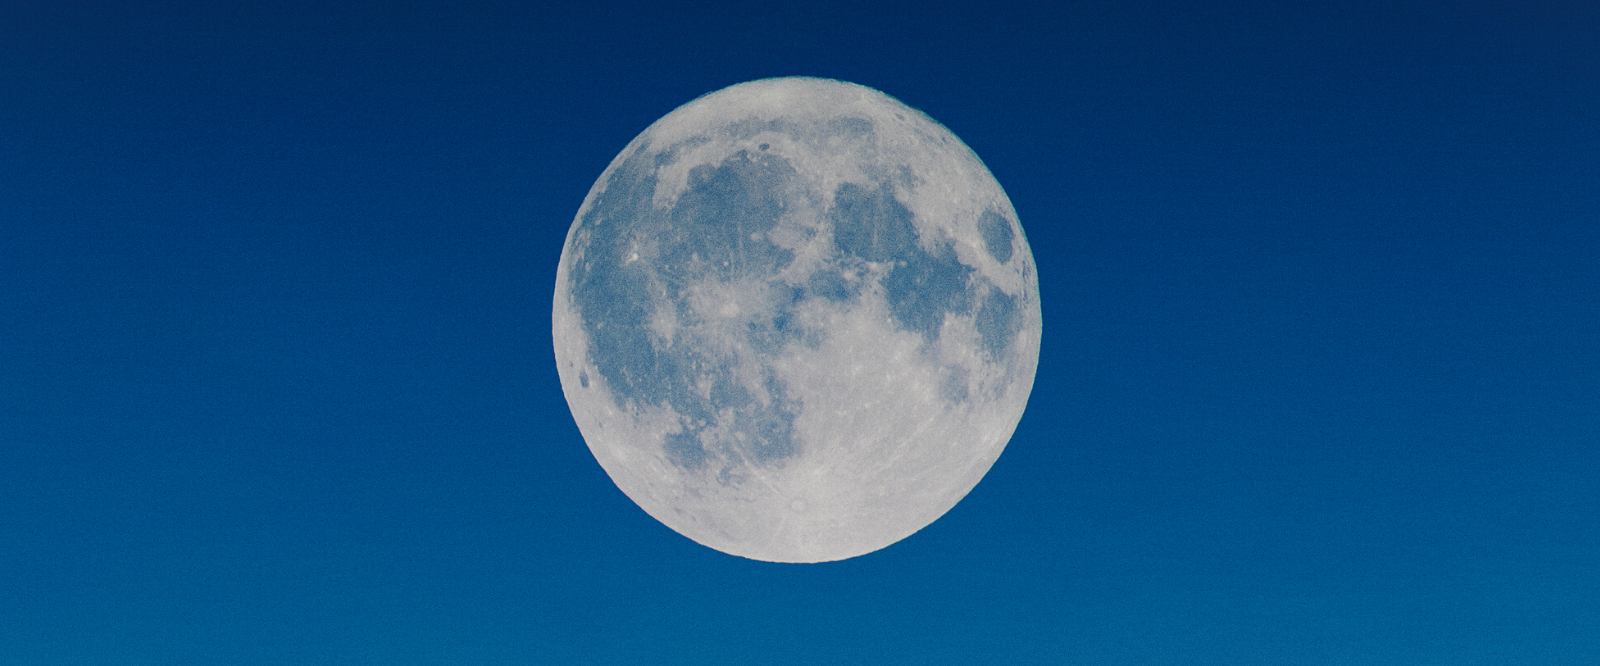 full moon against blue sky for use in organic skin care preparations